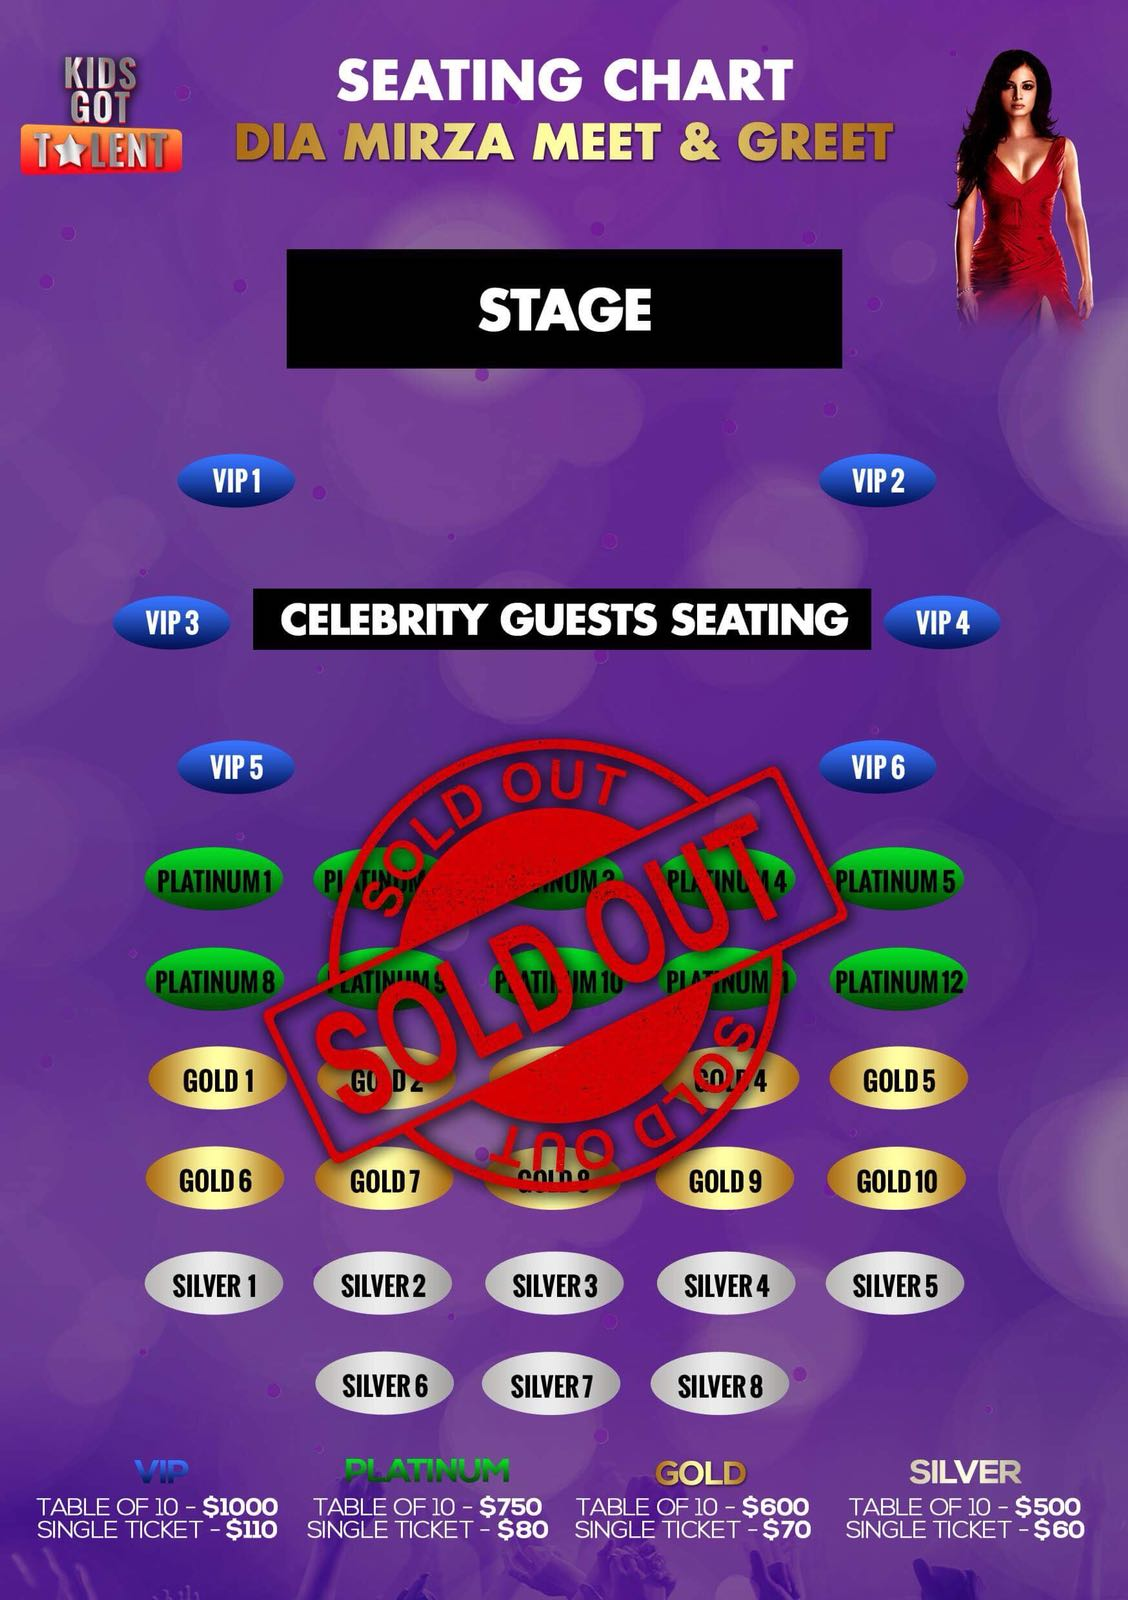 Kids Got Talent and Meet & Greet Dia Mirza In Melbourne Seating Map